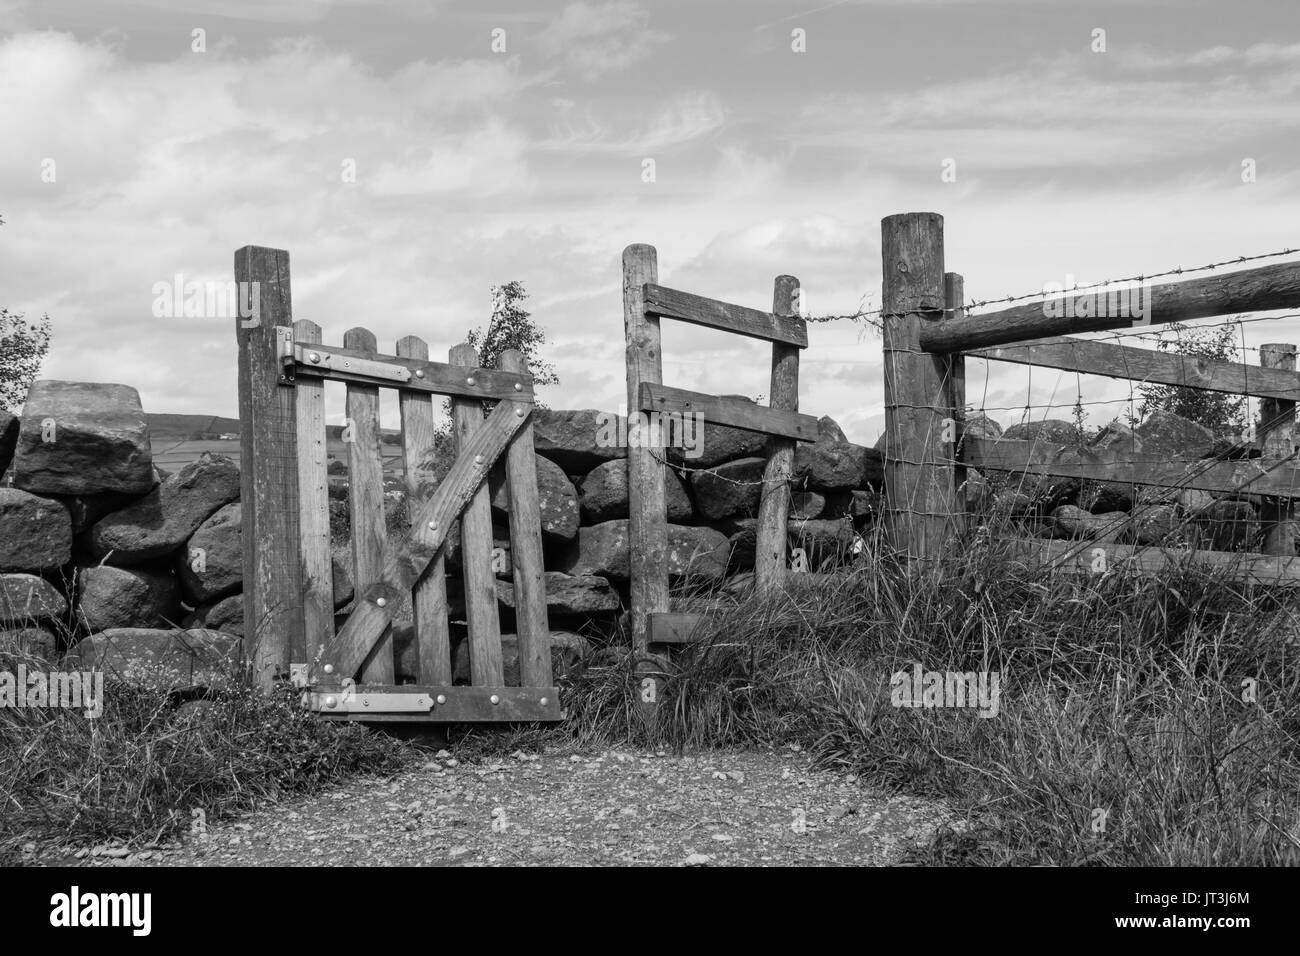 A rustic, slanted wooden gate in a traditional stone wall separating fields in the rural Lancashire countryside. Black and white - Stock Image